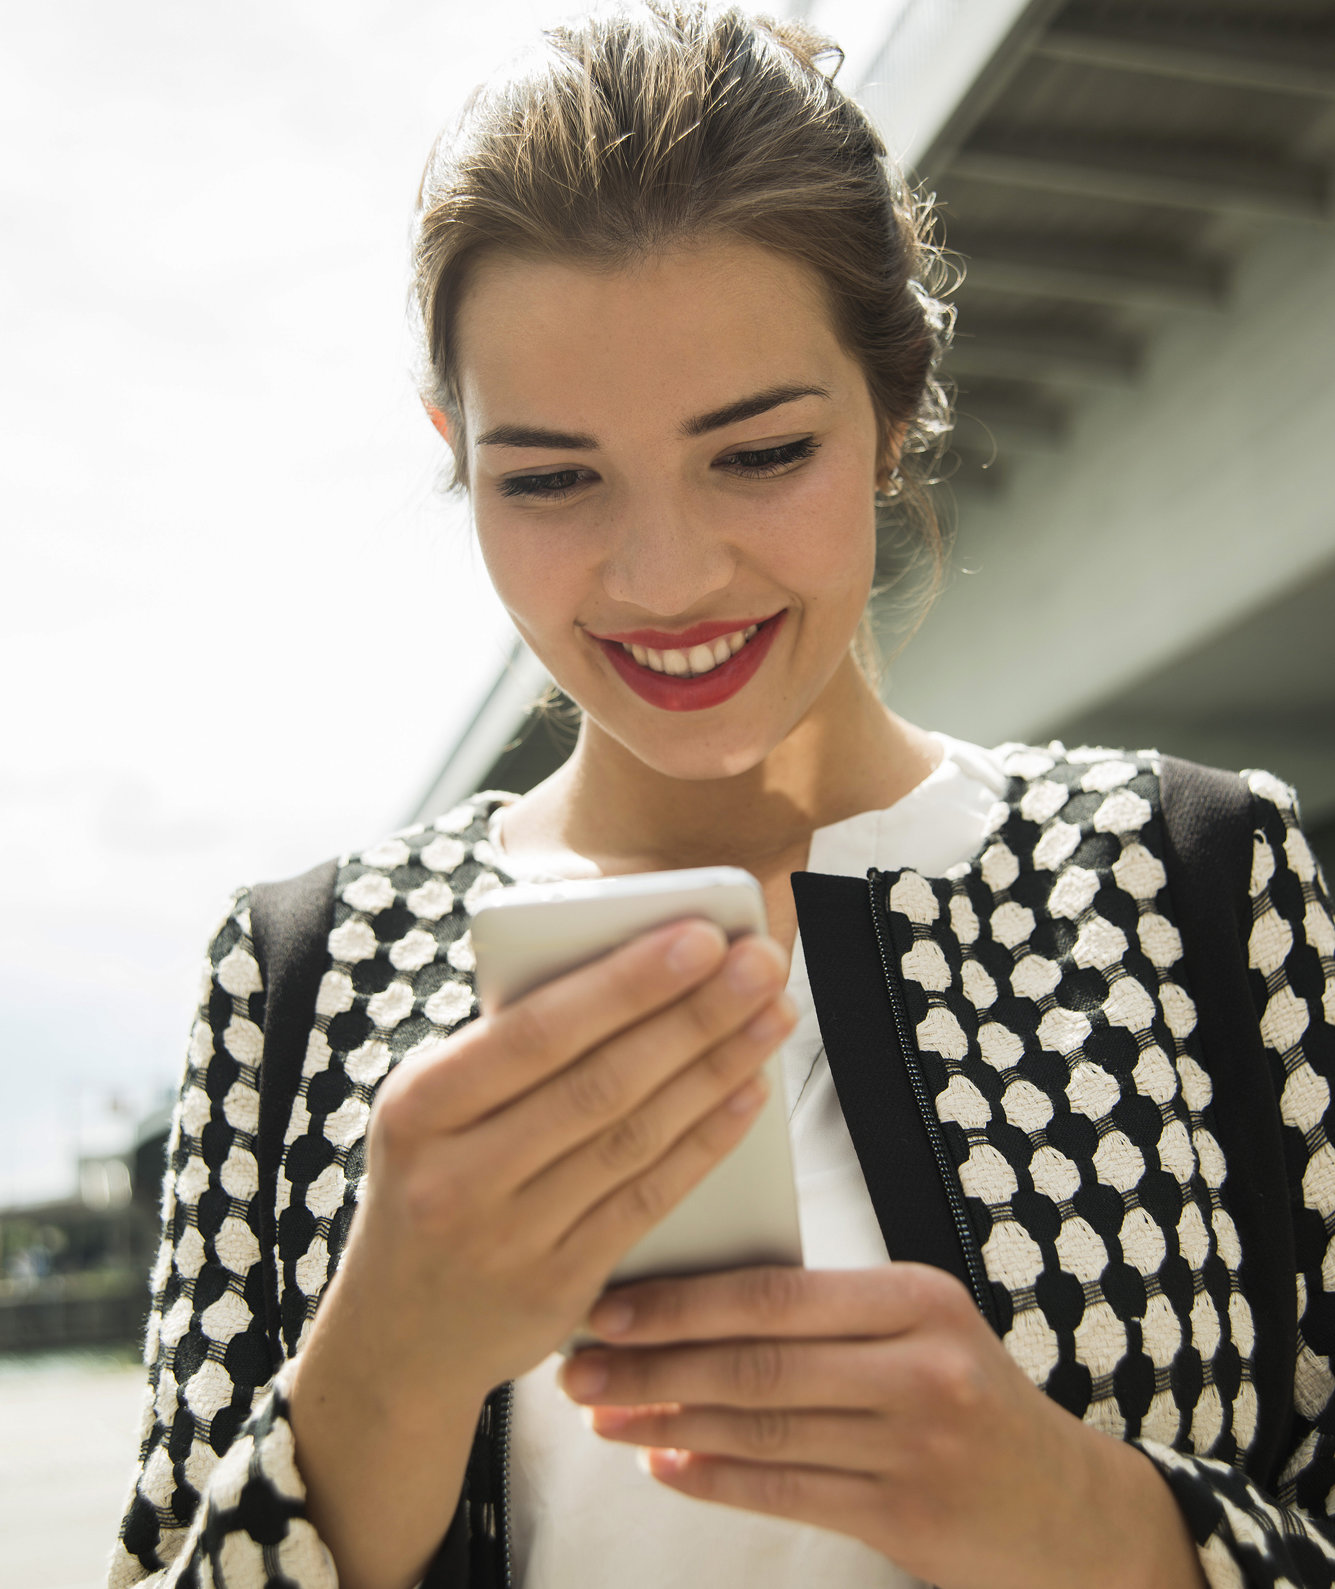 portrait-smiling-woman-smartphone